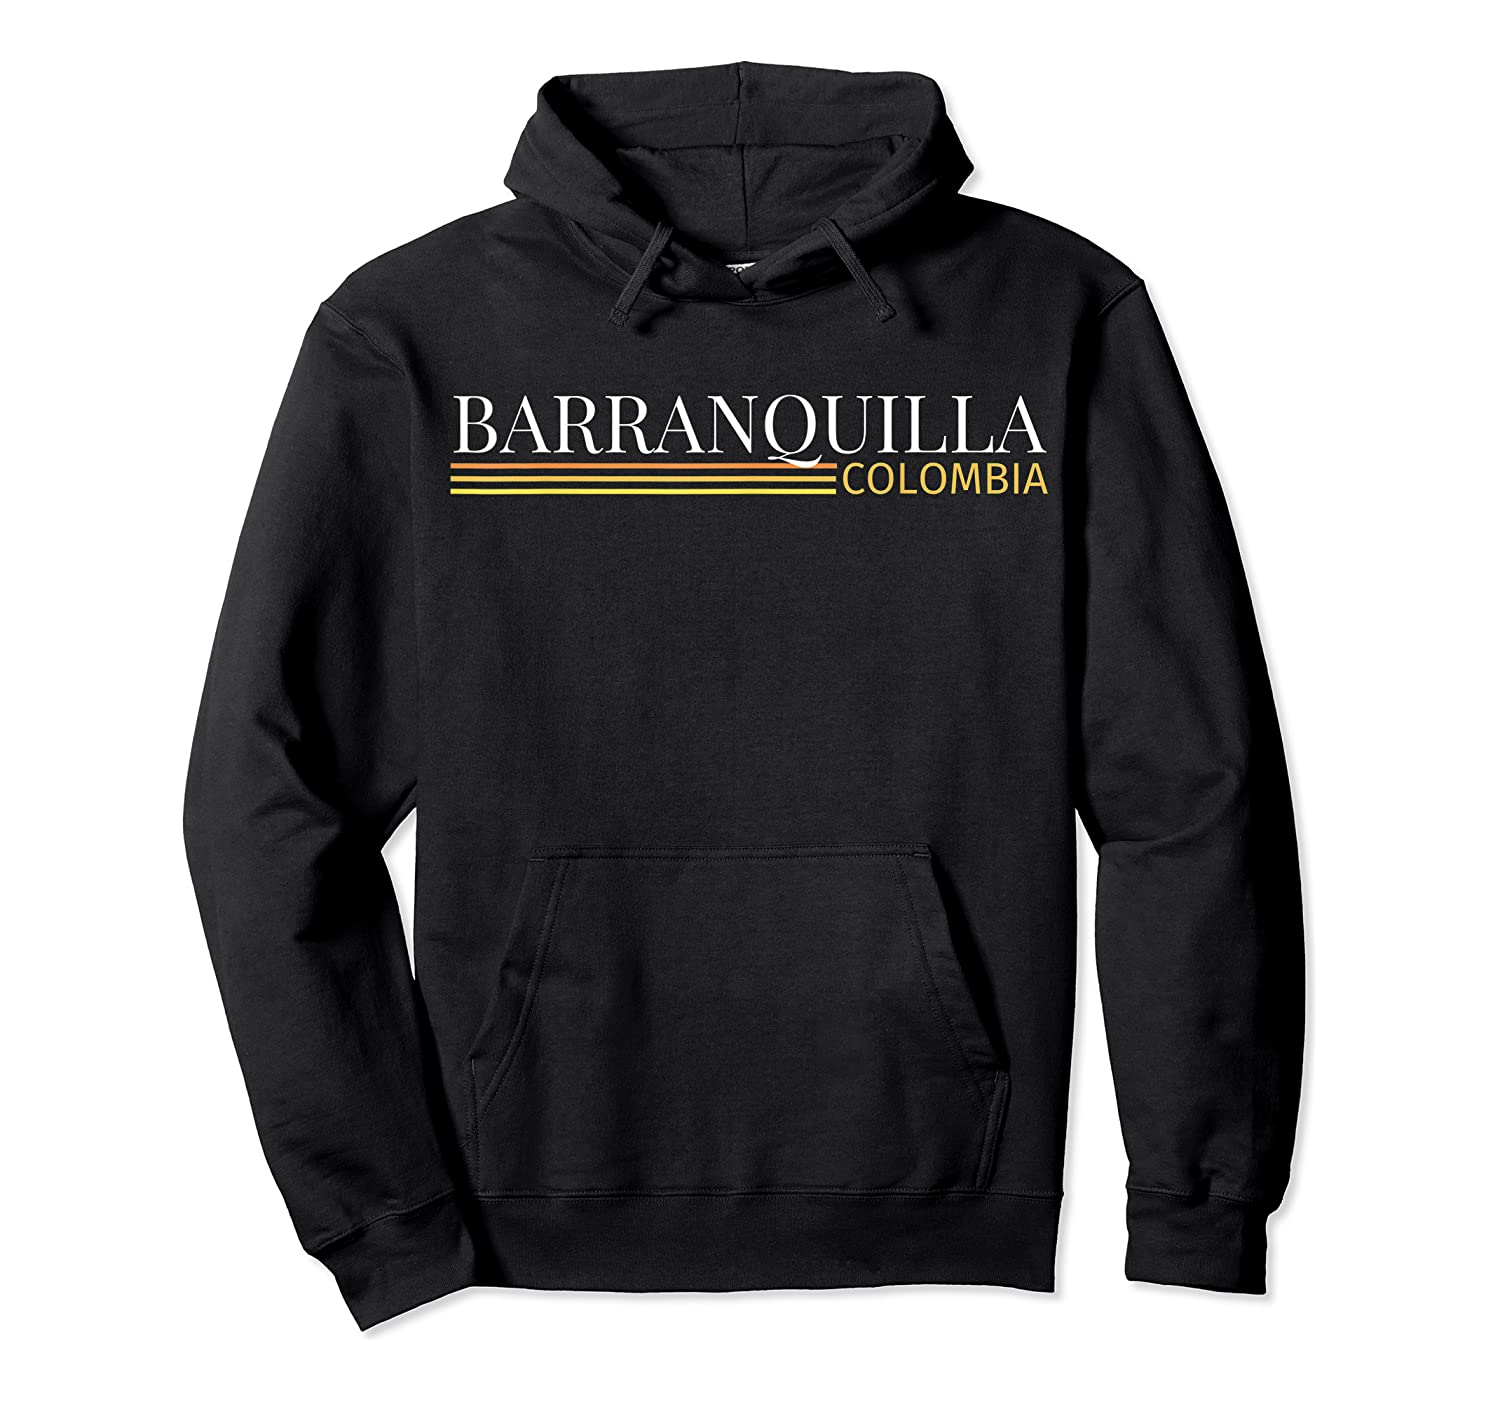 Barranquilla Colombia T-shirt Unisex Pullover Hoodie